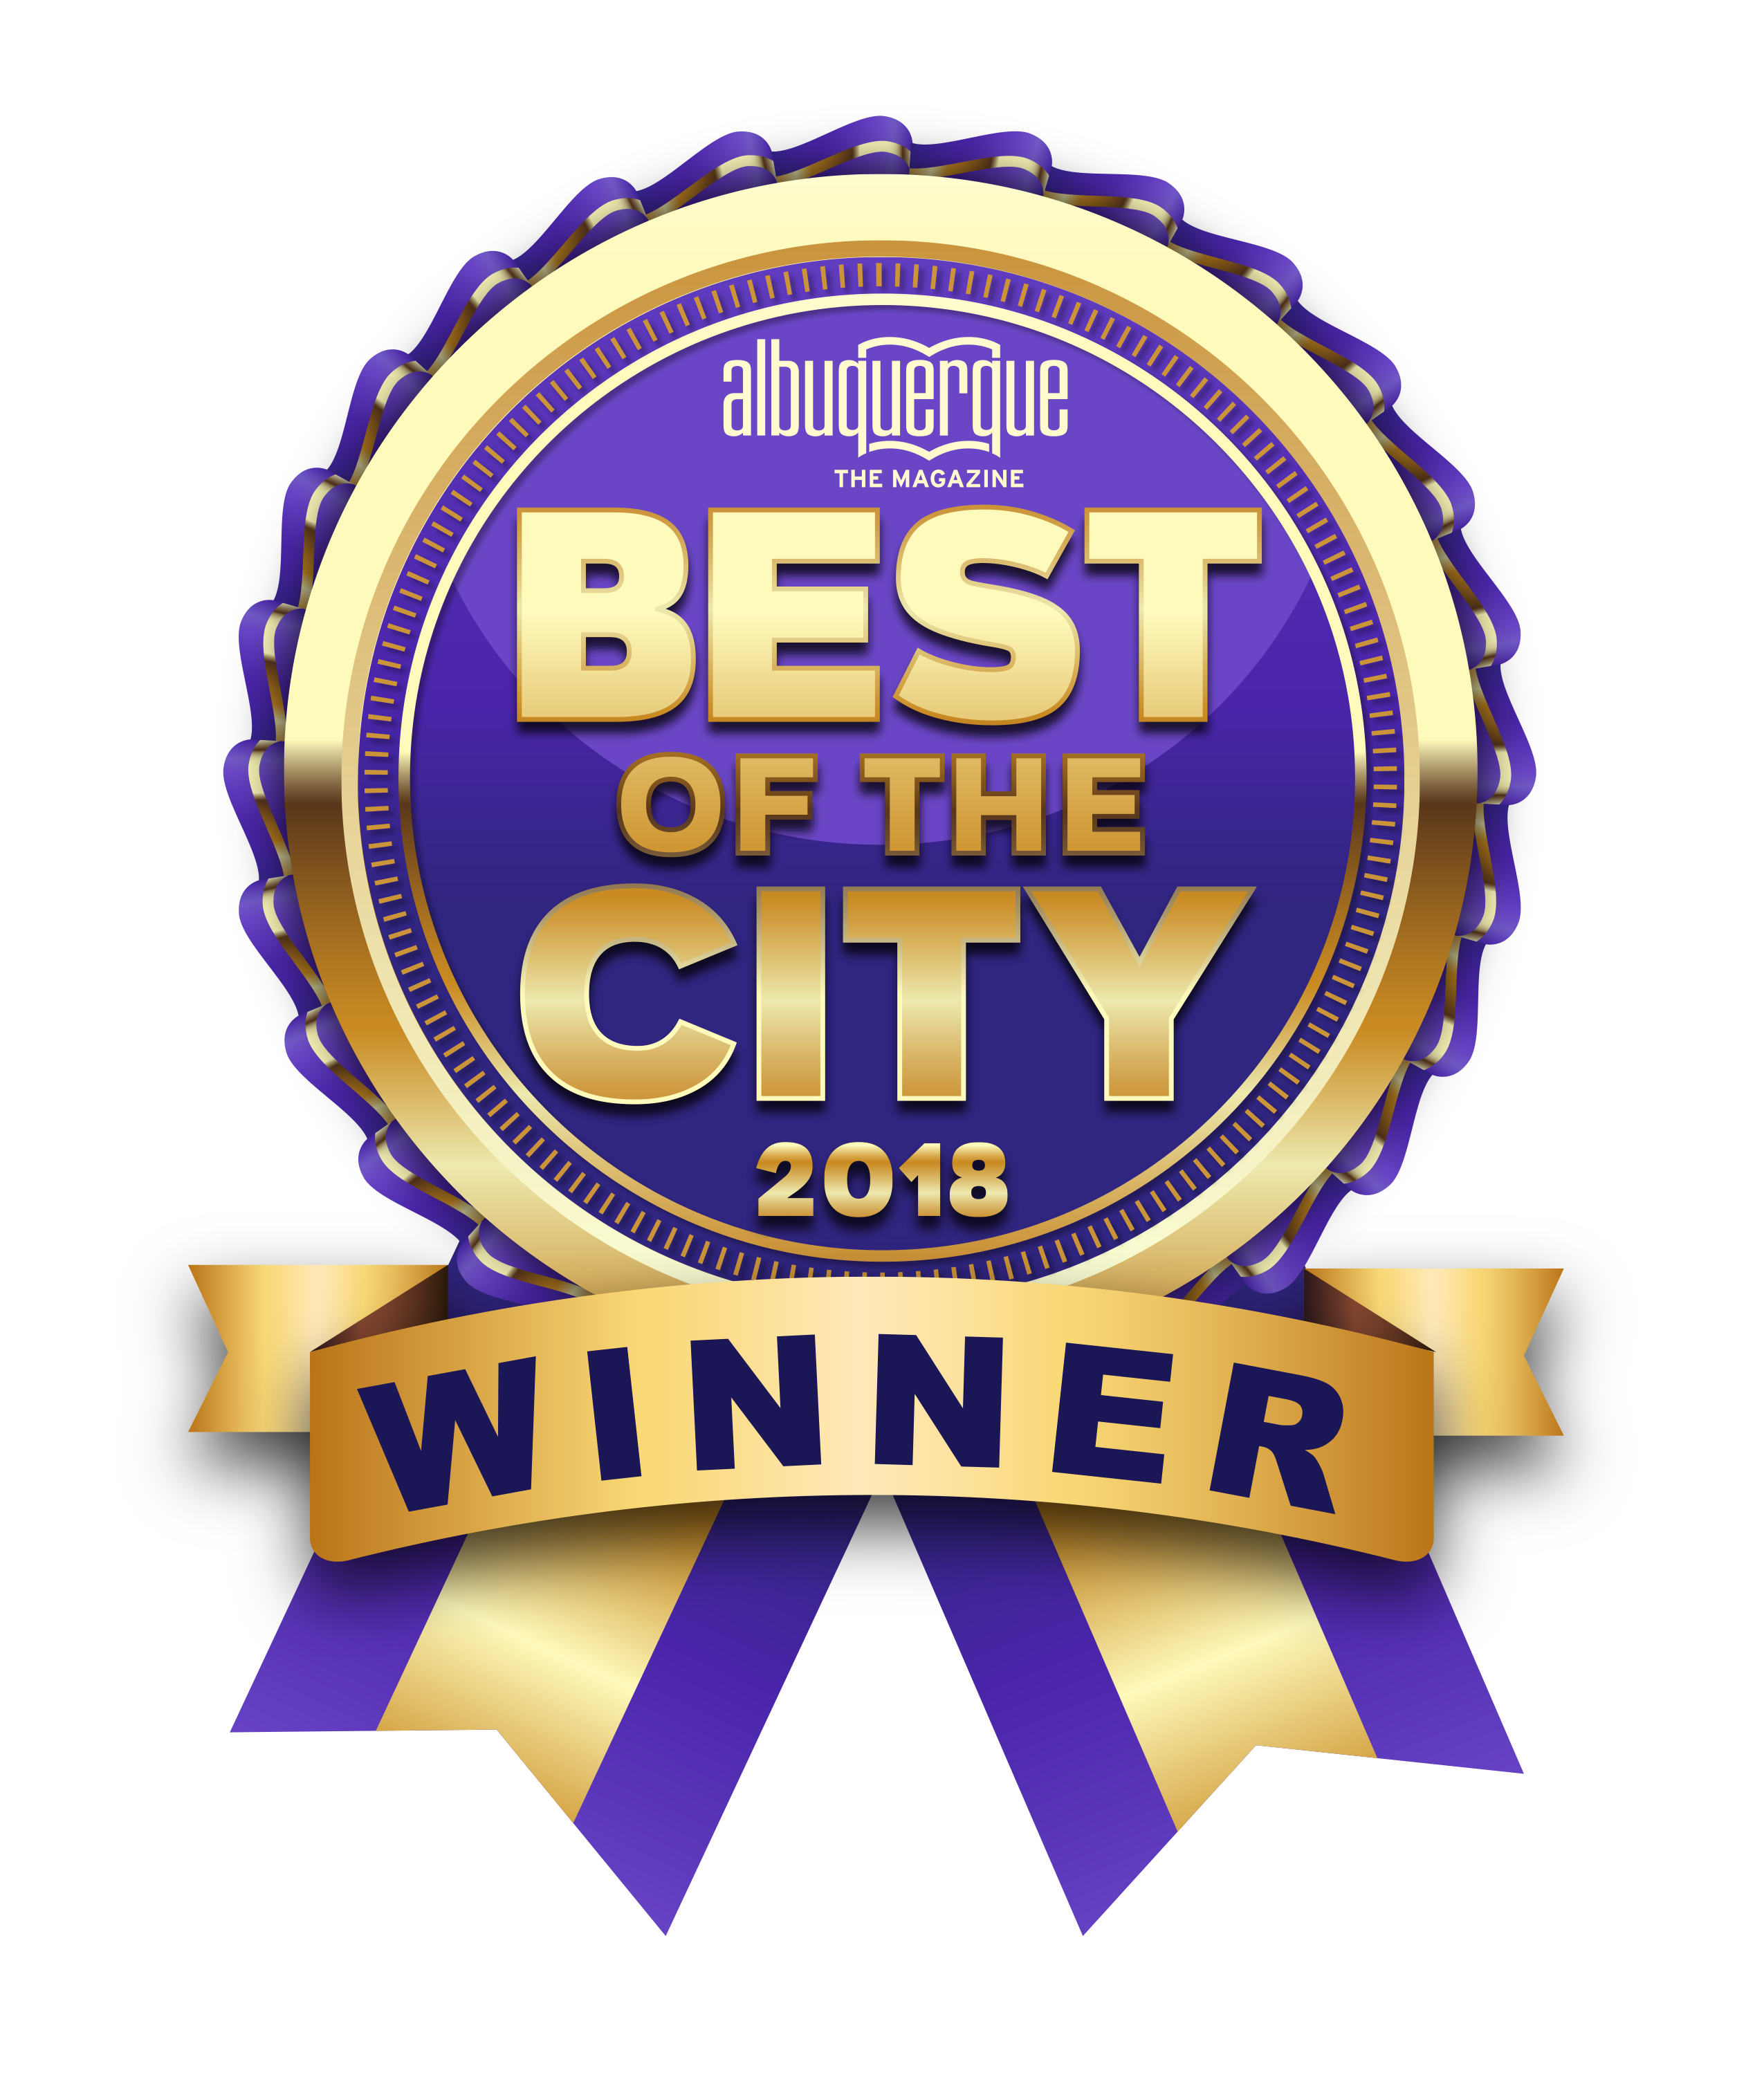 Albuquerque Best of the City 2018